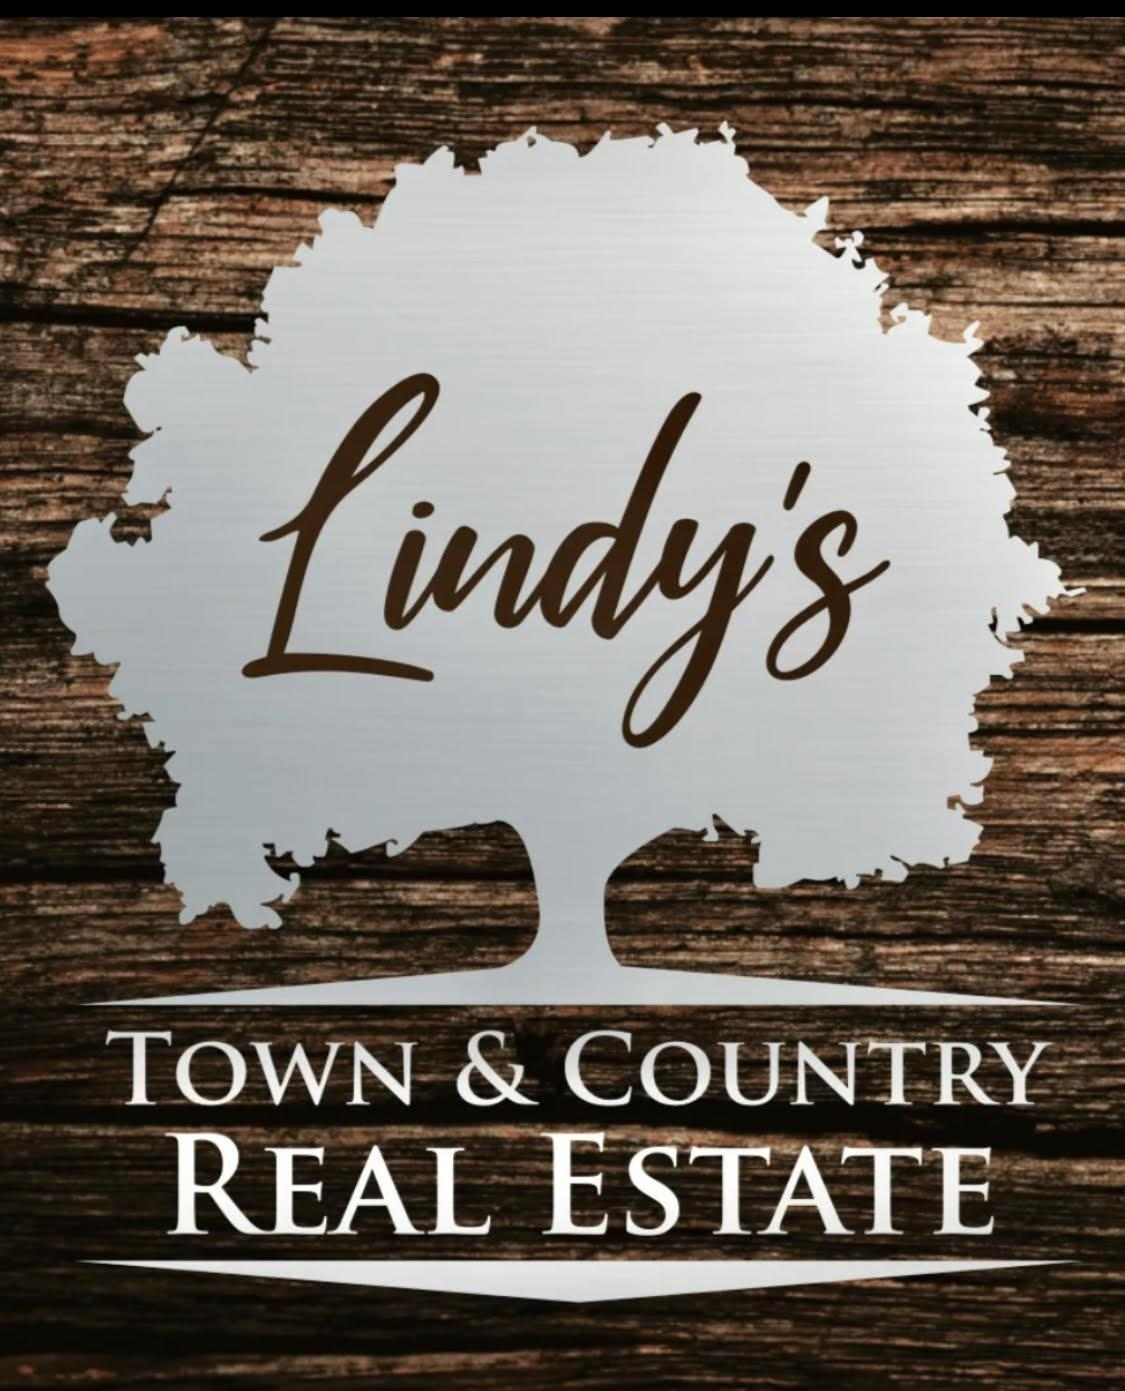 Lindy's Town & Country Real Estate